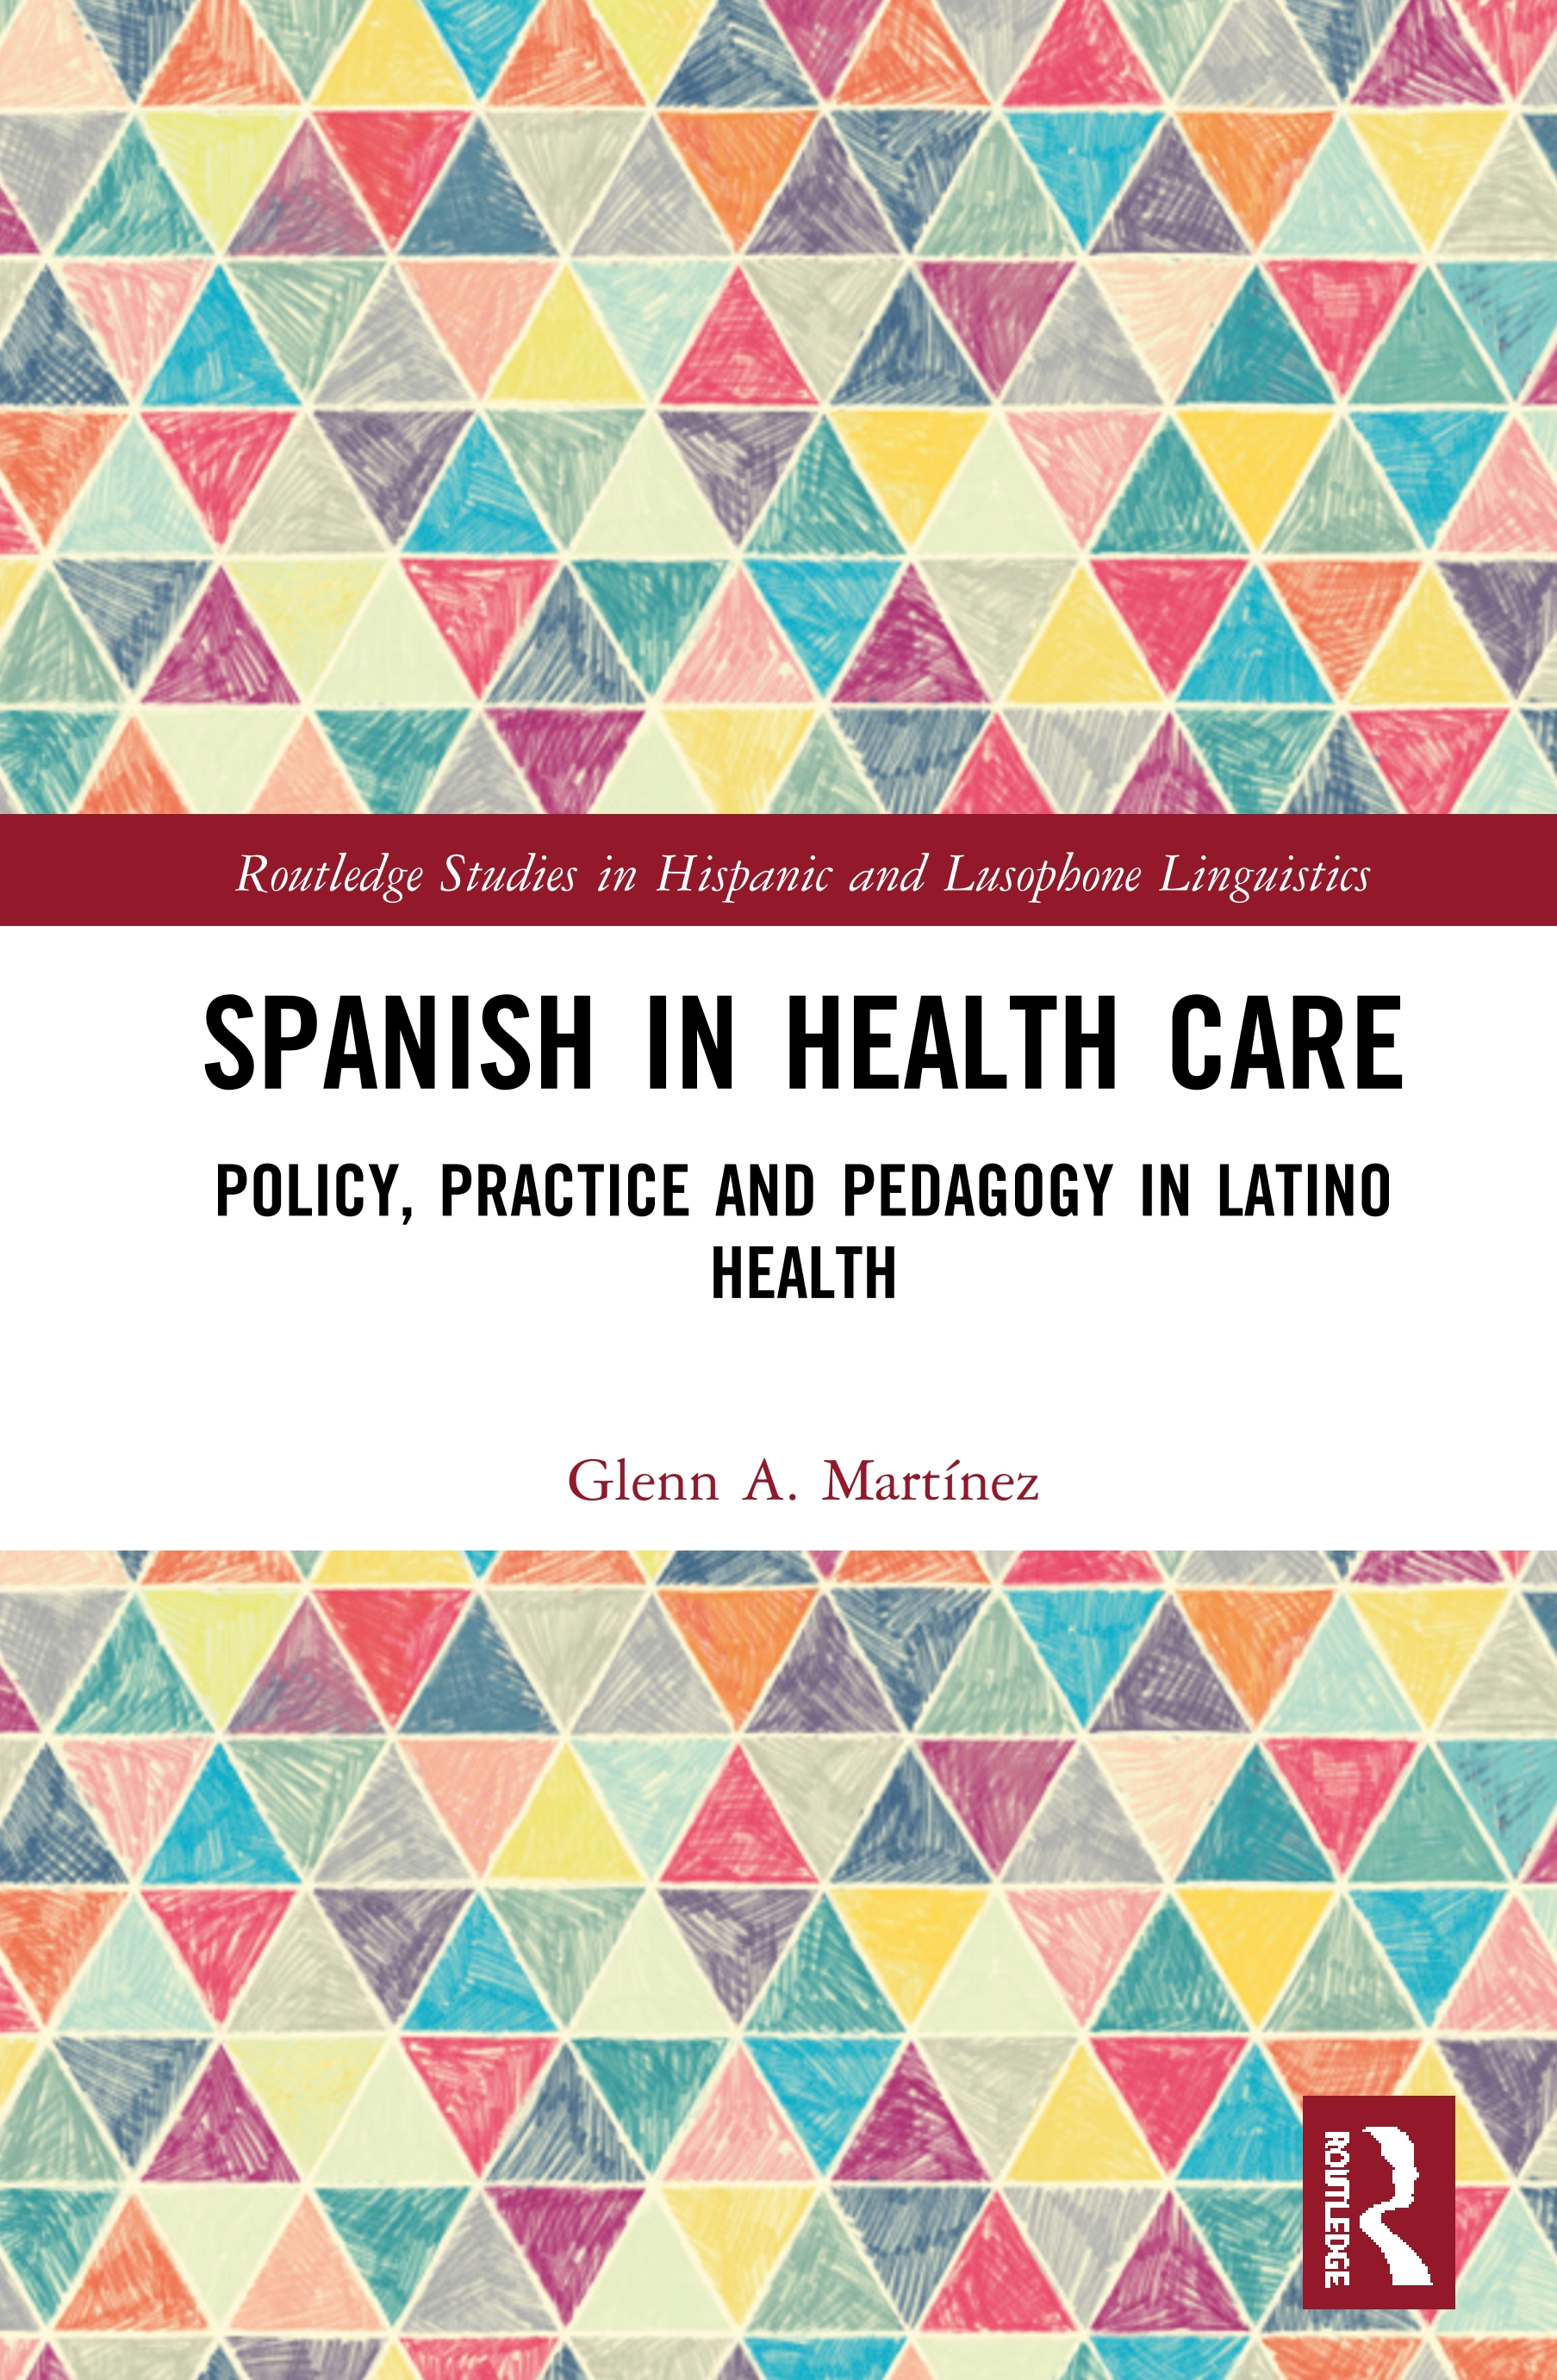 Spanish in Health Care: Policy, Practice and Pedagogy in Latino Health book cover